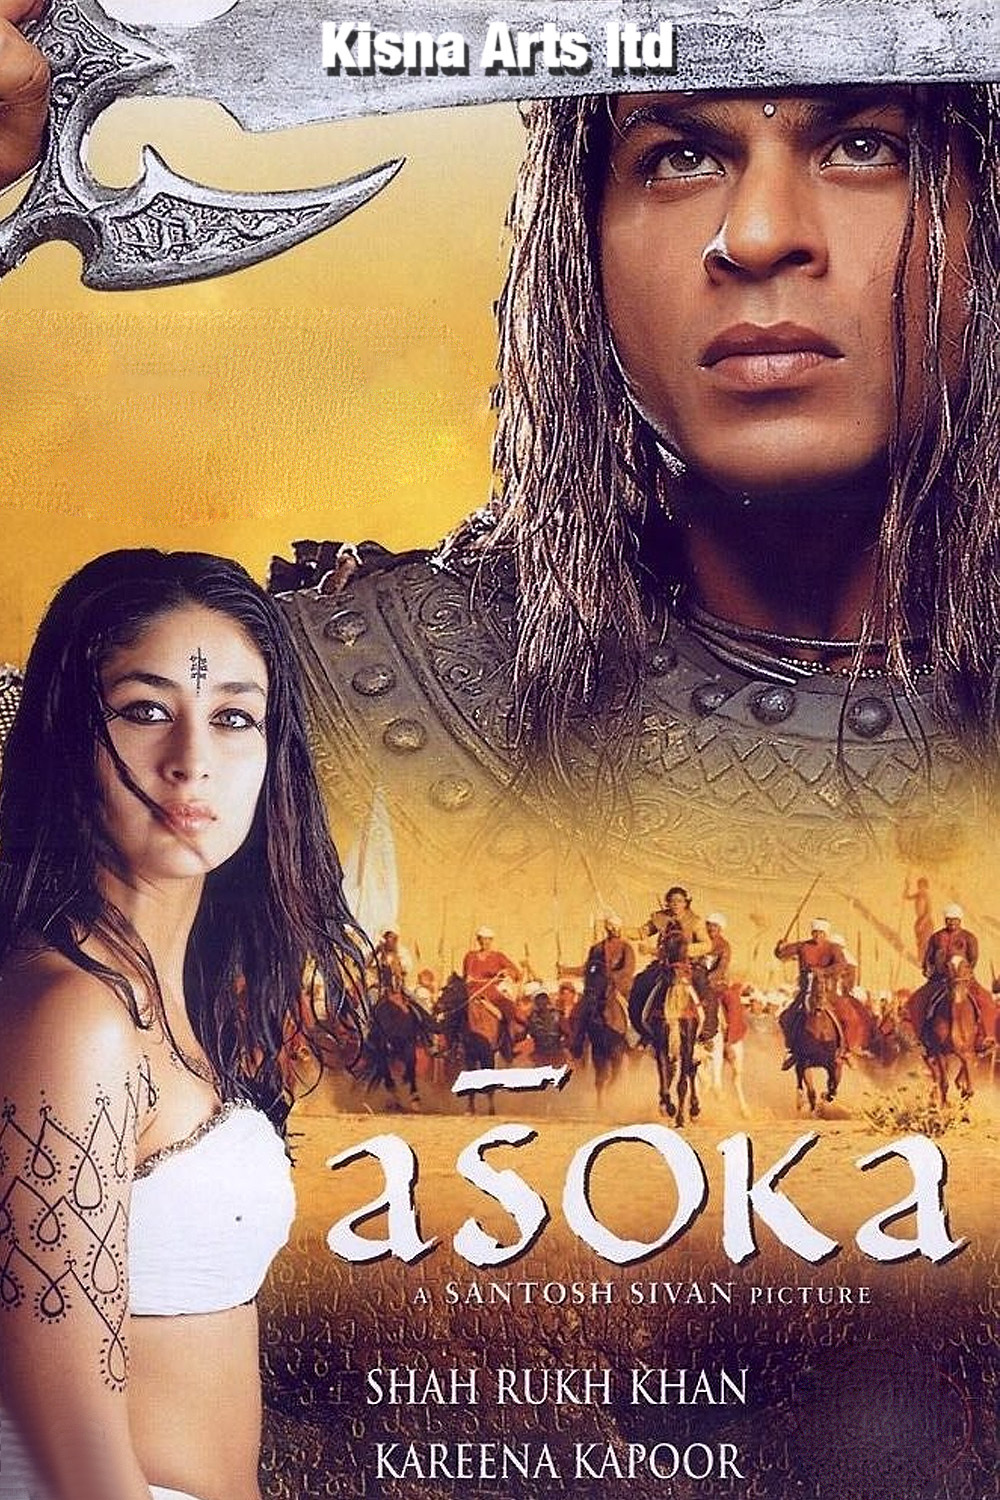 Ashoka the Great Afsomali